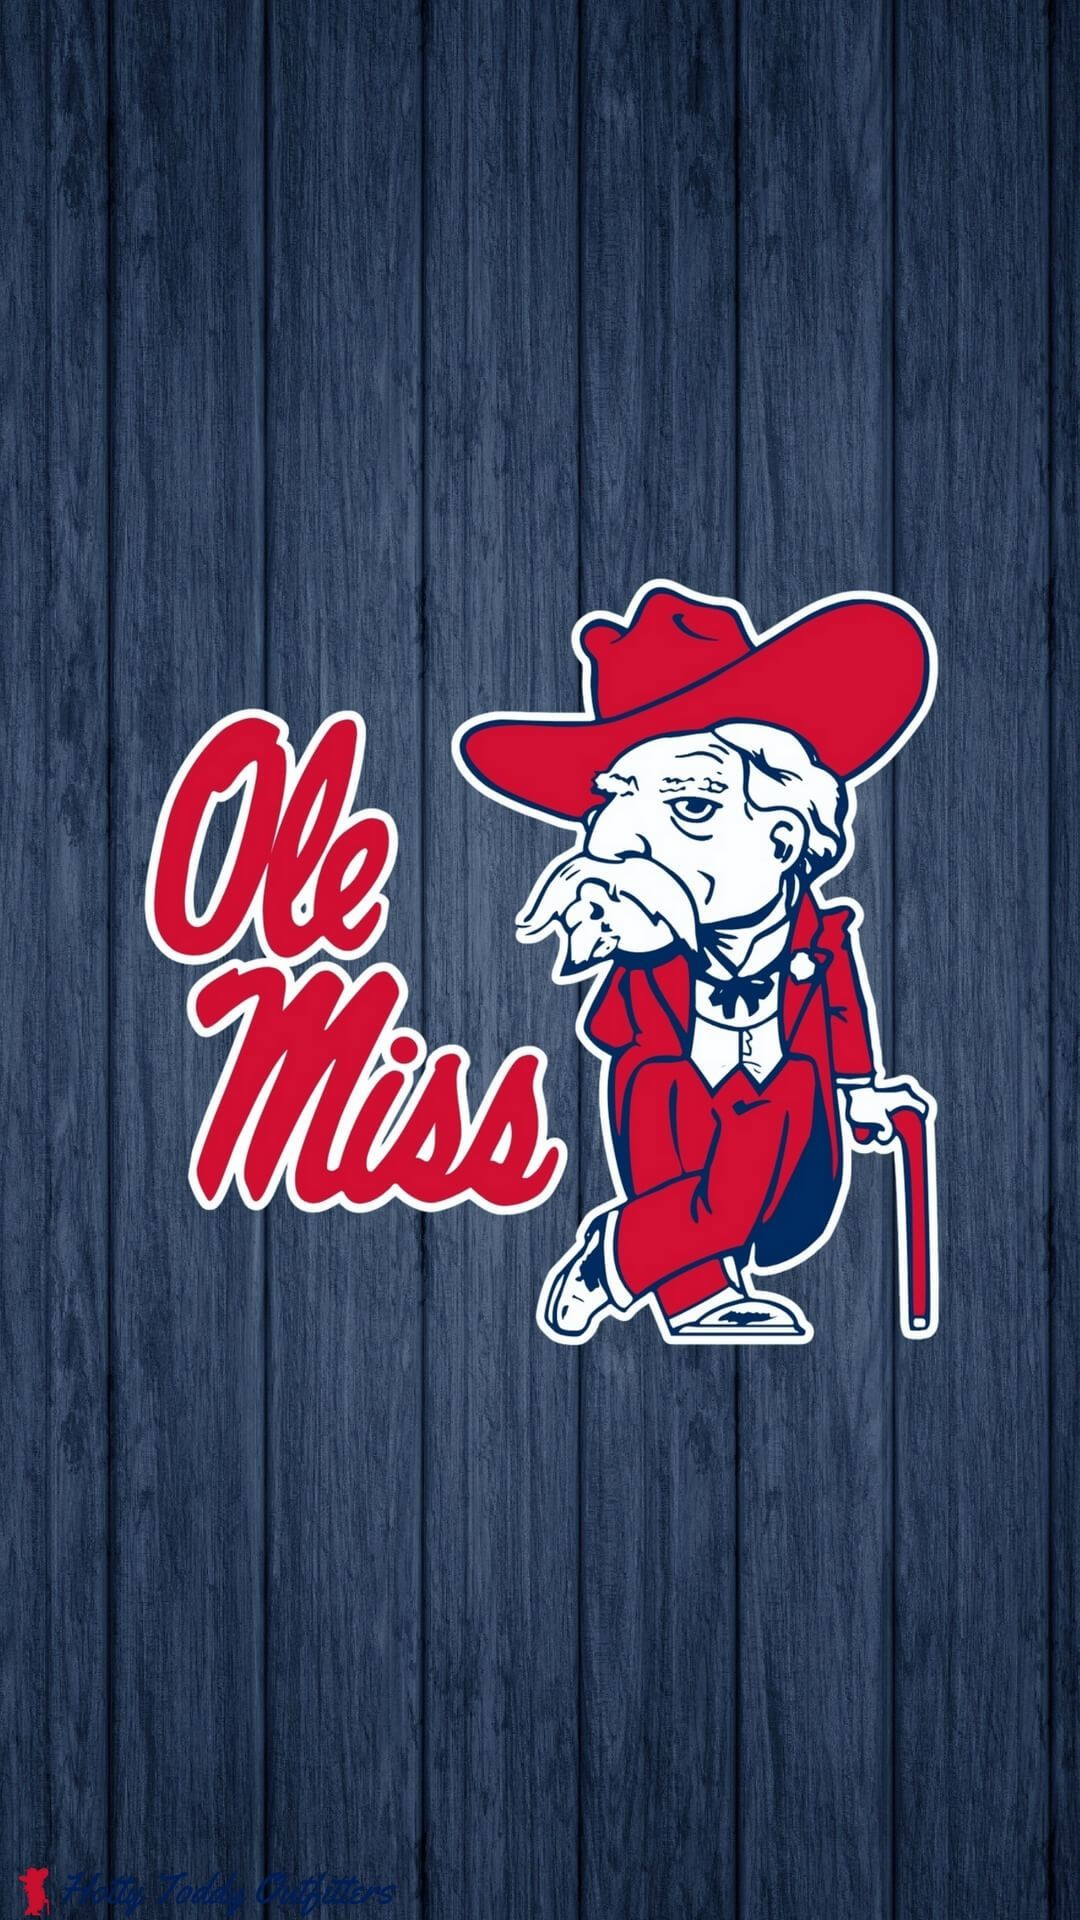 1080x1920 Ole Miss Colonel Reb Logo iPhone Wallpaper